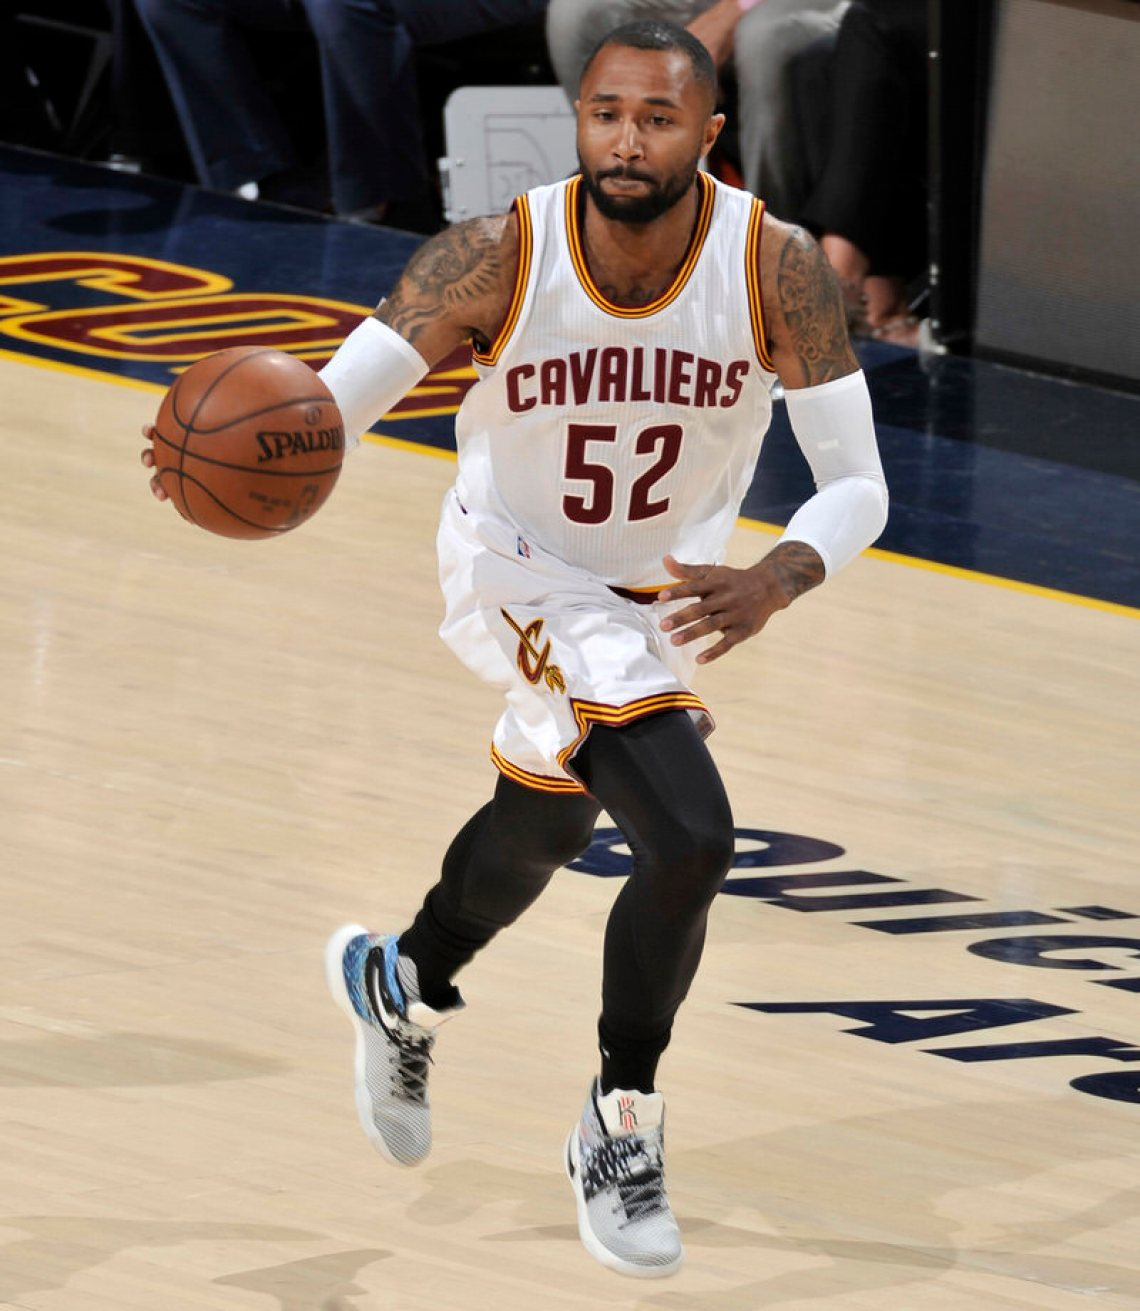 CLEVELAND, OH - JUNE 8: Mo Williams #52 of the Cleveland Cavaliers brings the ball up the court against the Golden State Warriors in Game Three of the 2016 NBA Finals on June 8, 2016 at The Quicken Loans Arena in Cleveland, Ohio. NOTE TO USER: User expressly acknowledges and agrees that, by downloading and or using this photograph, user is consenting to the terms and conditions of Getty Images License Agreement. Mandatory Copyright Notice: Copyright 2016 NBAE (Photo by David Liam Kyle/NBAE via Getty Images)